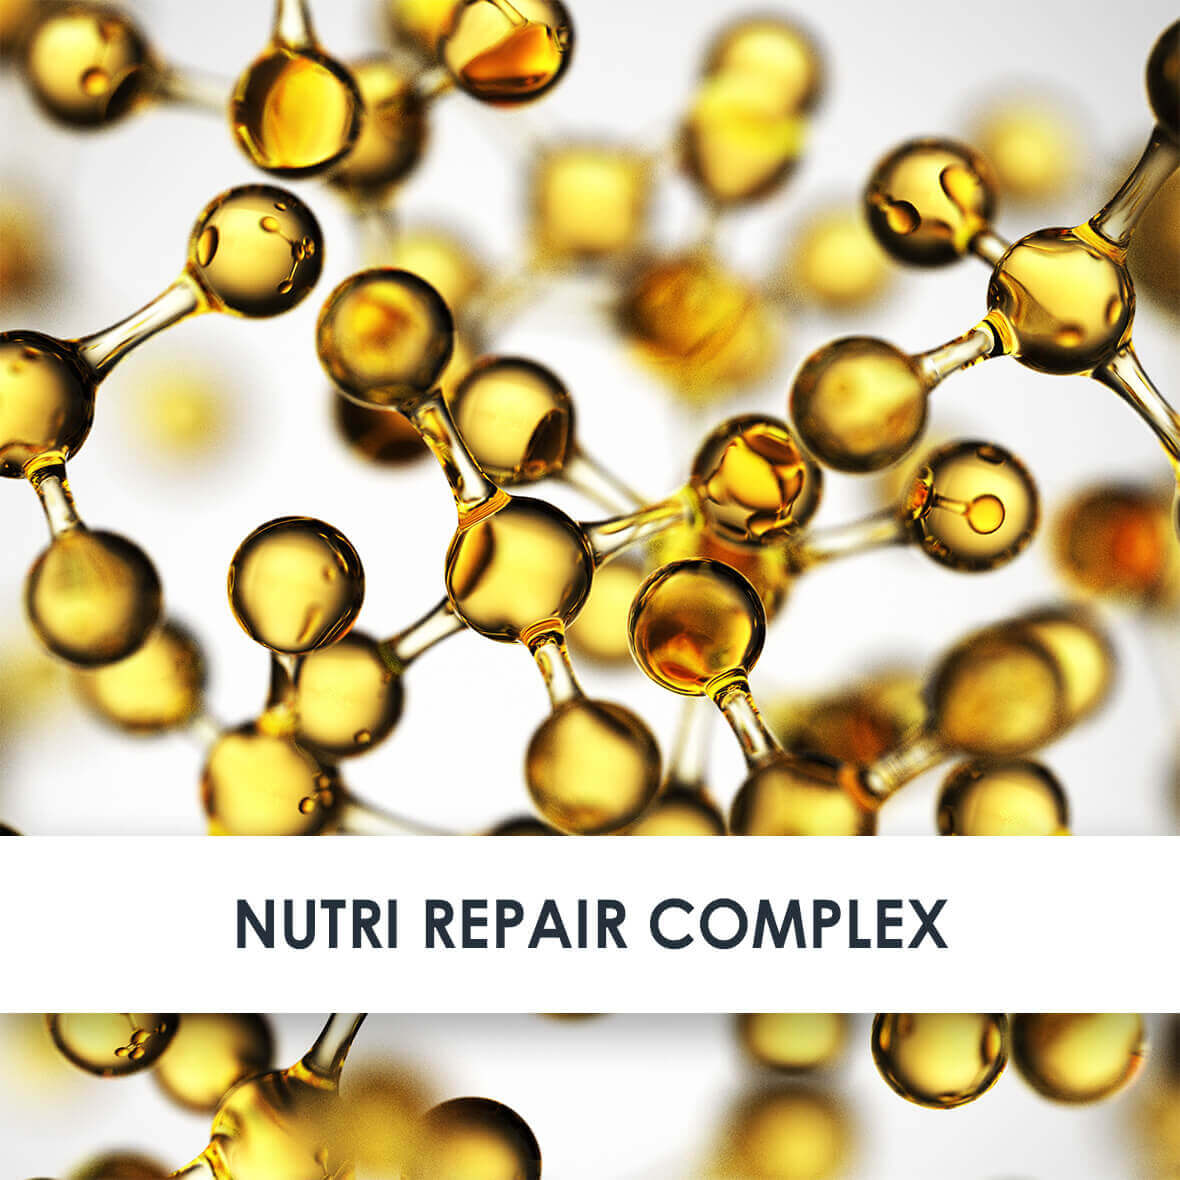 Nutri Repair Complex Active Ingredients